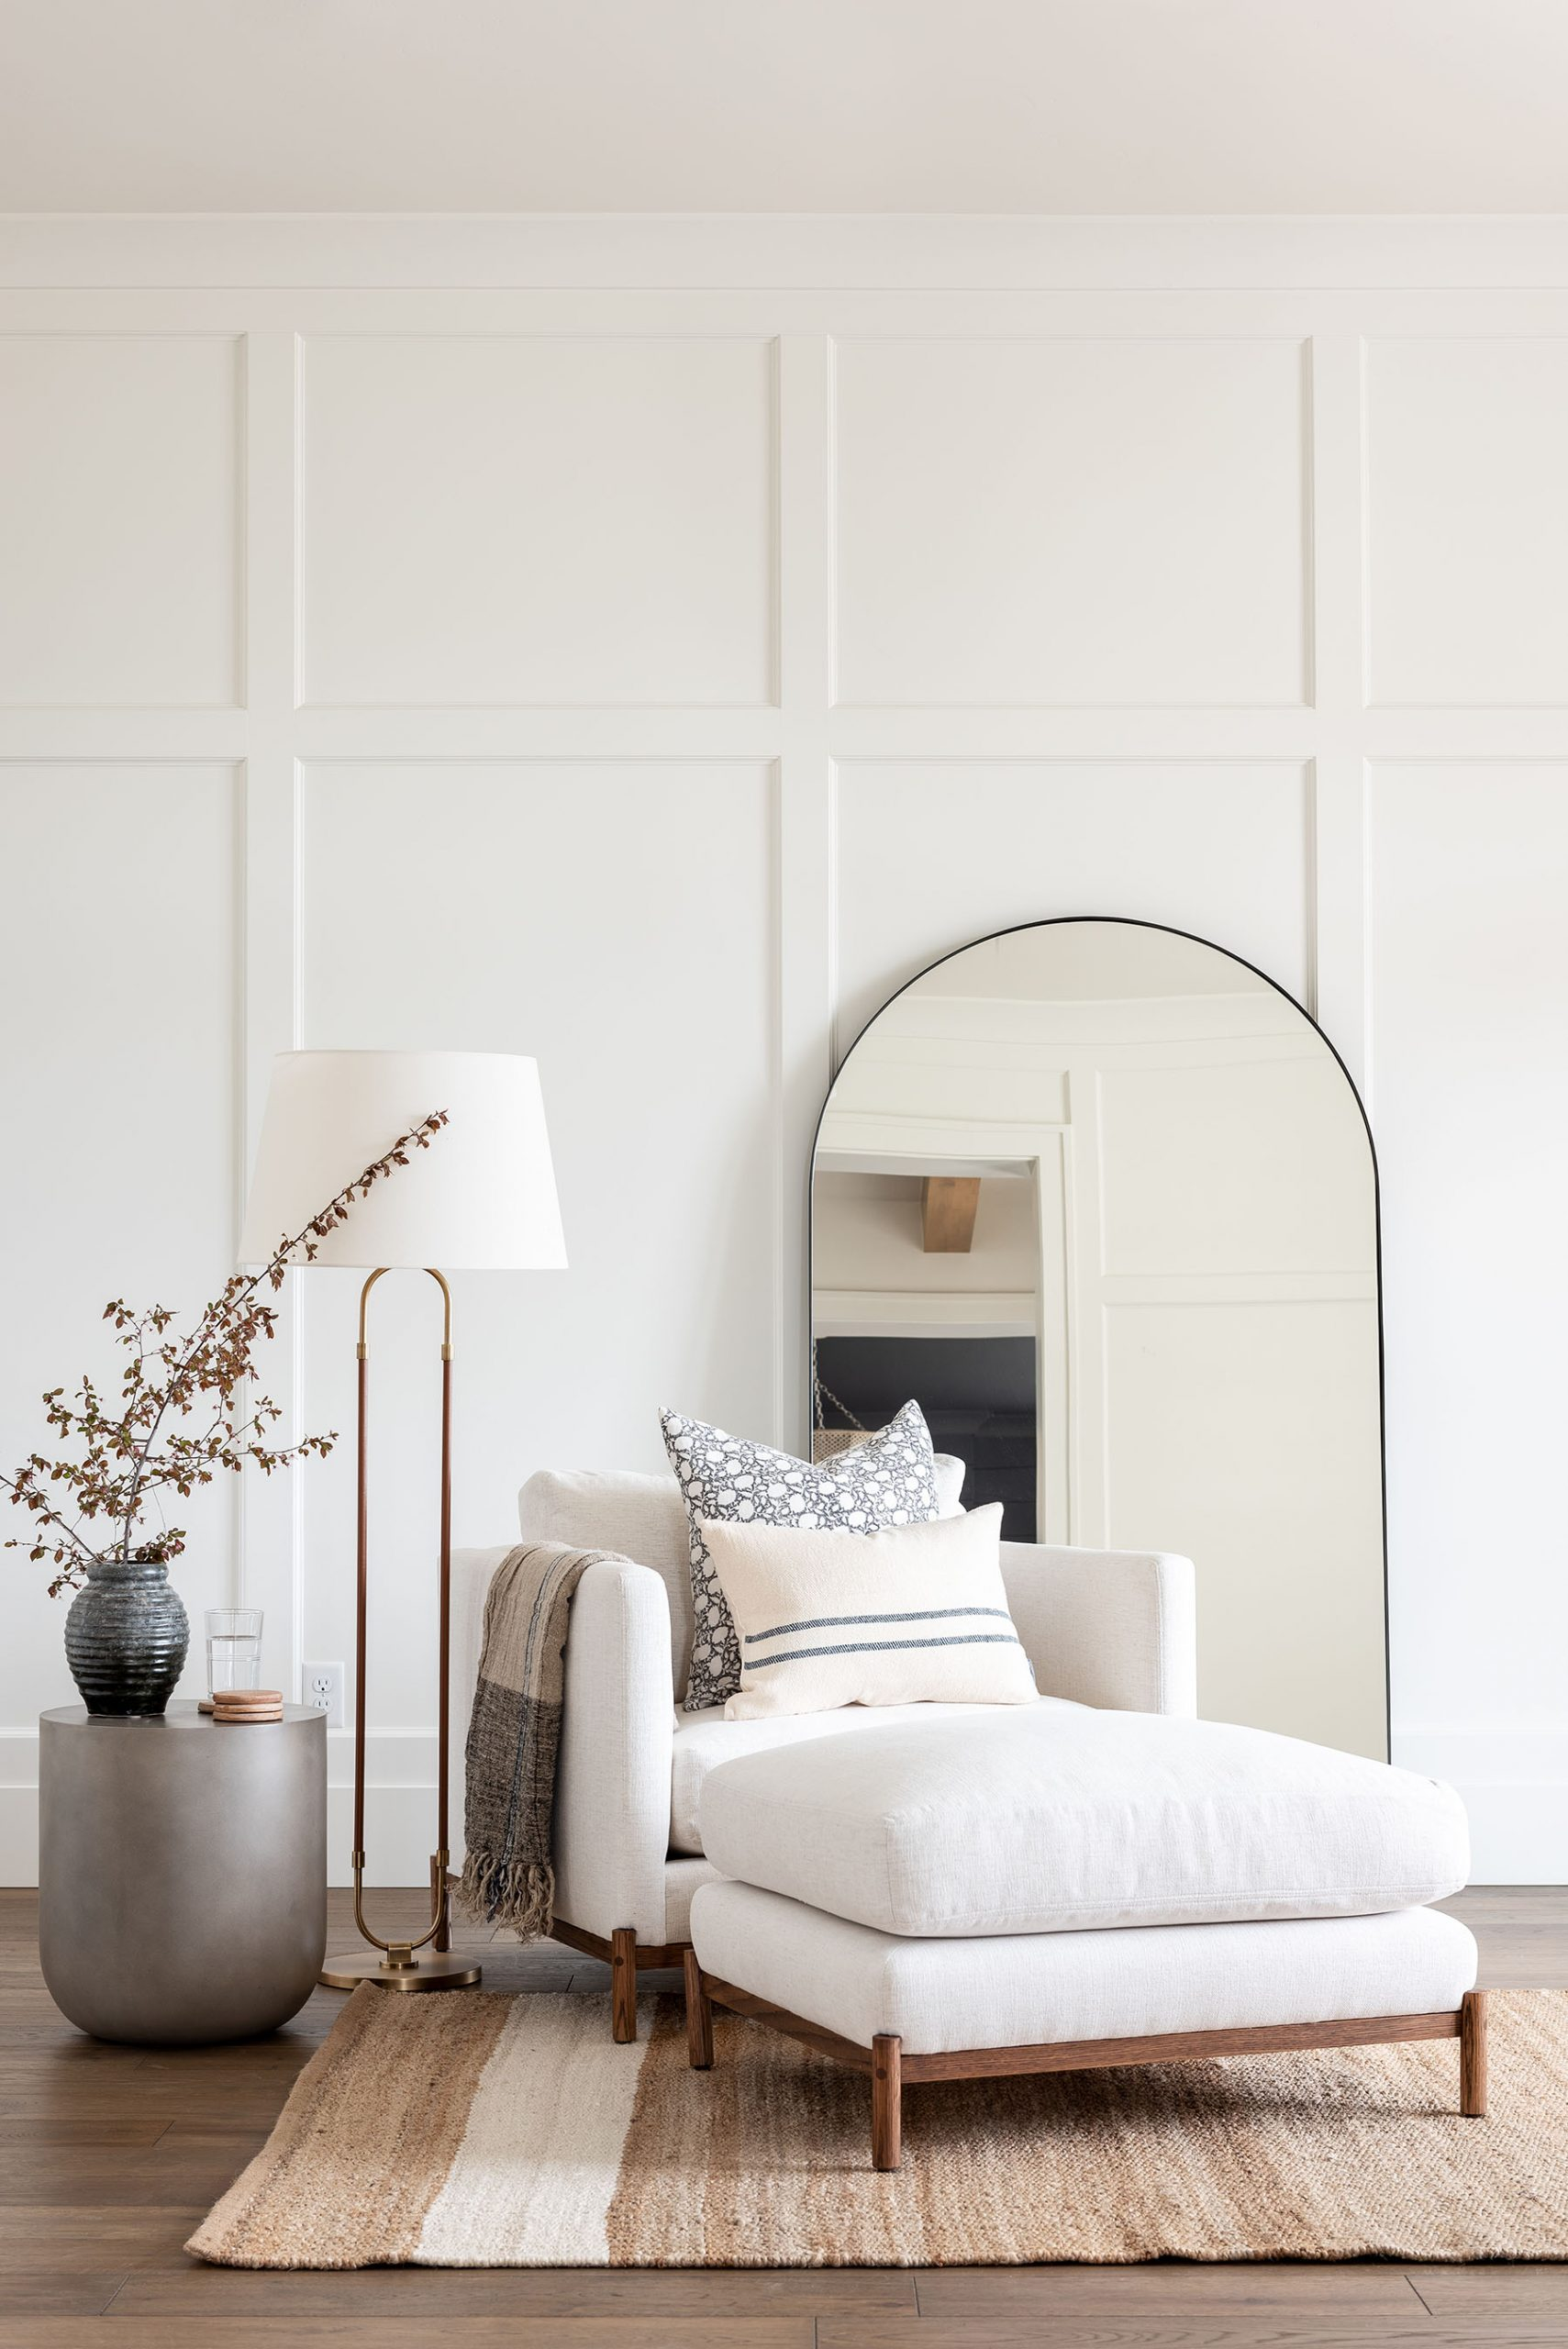 Adding Woven Materials To Your Space